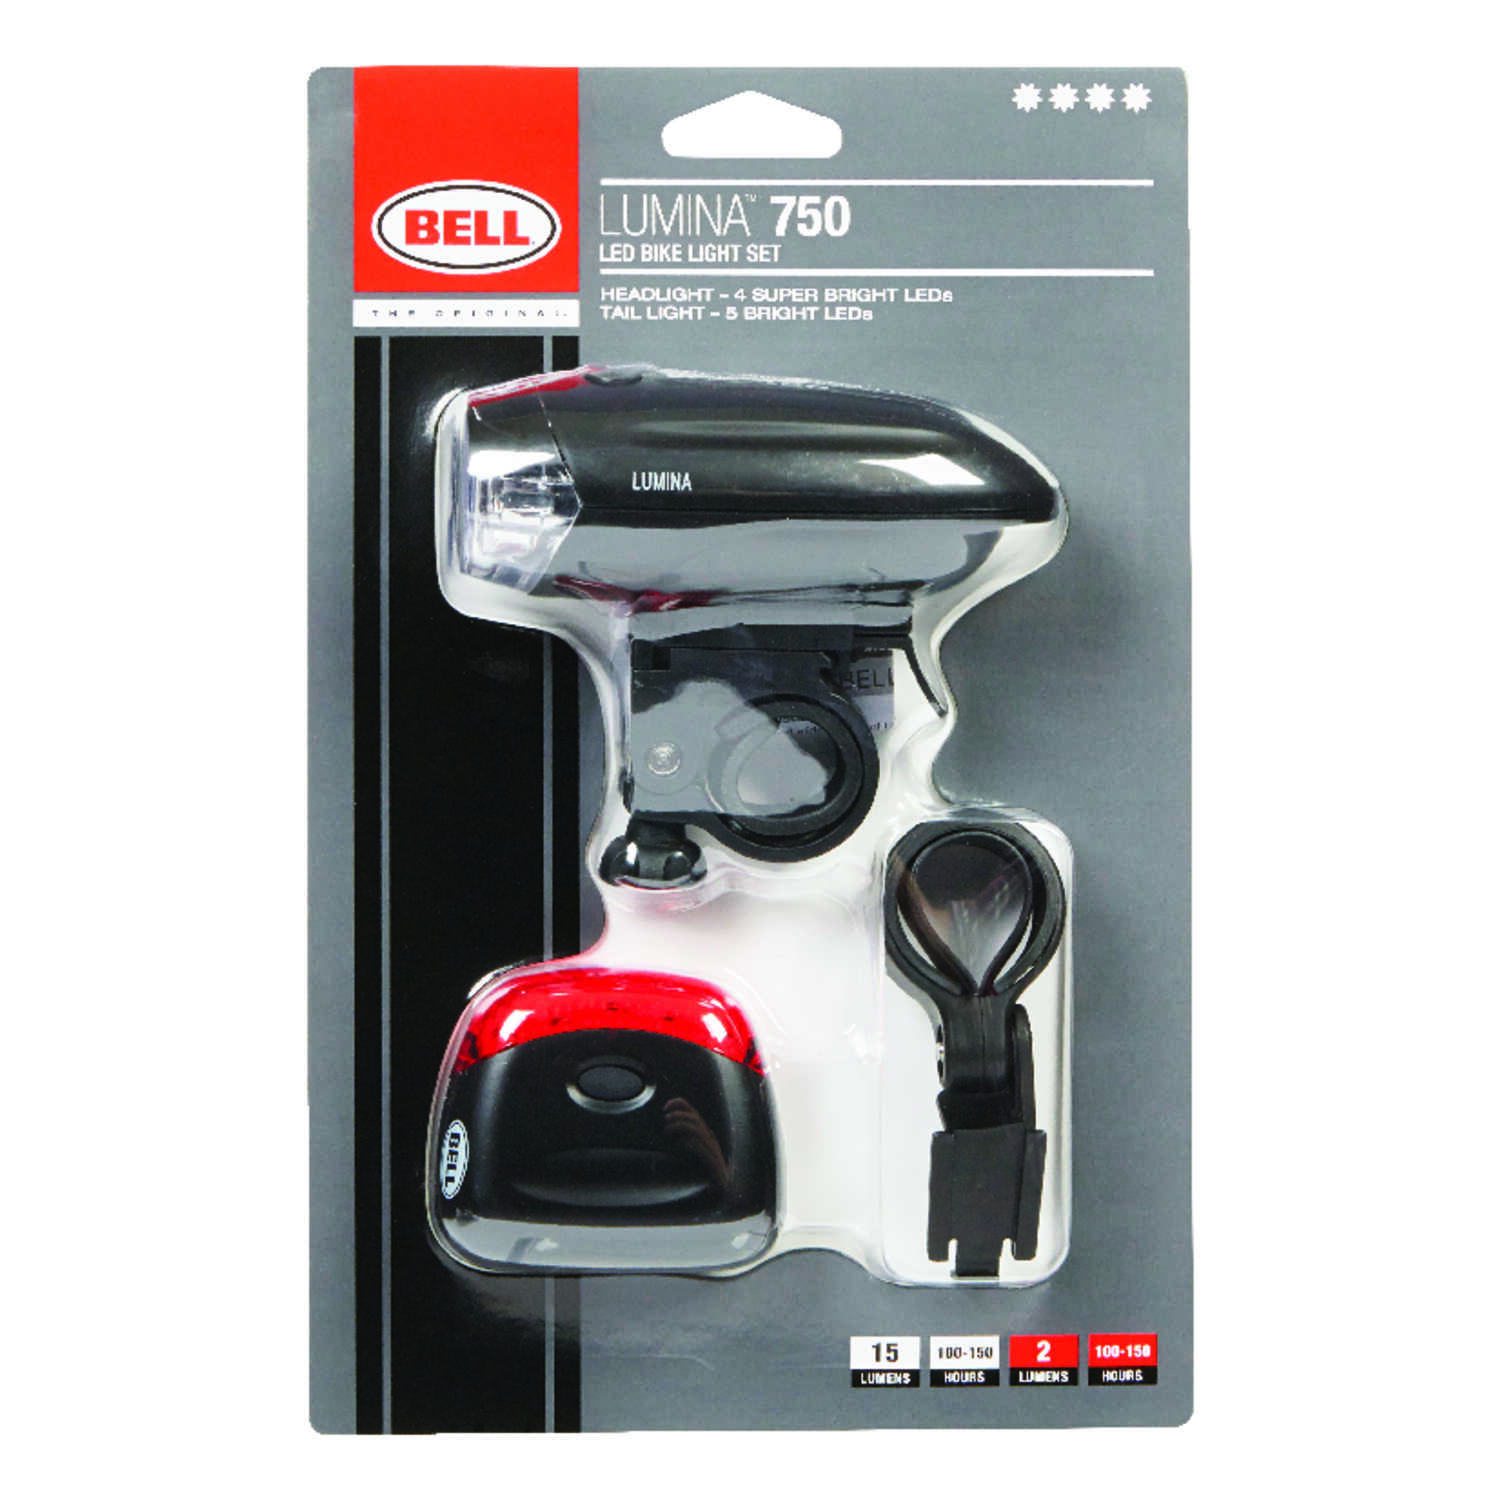 Bell Sports Lumina Composite LED Bike Light Black - Ace Hardware